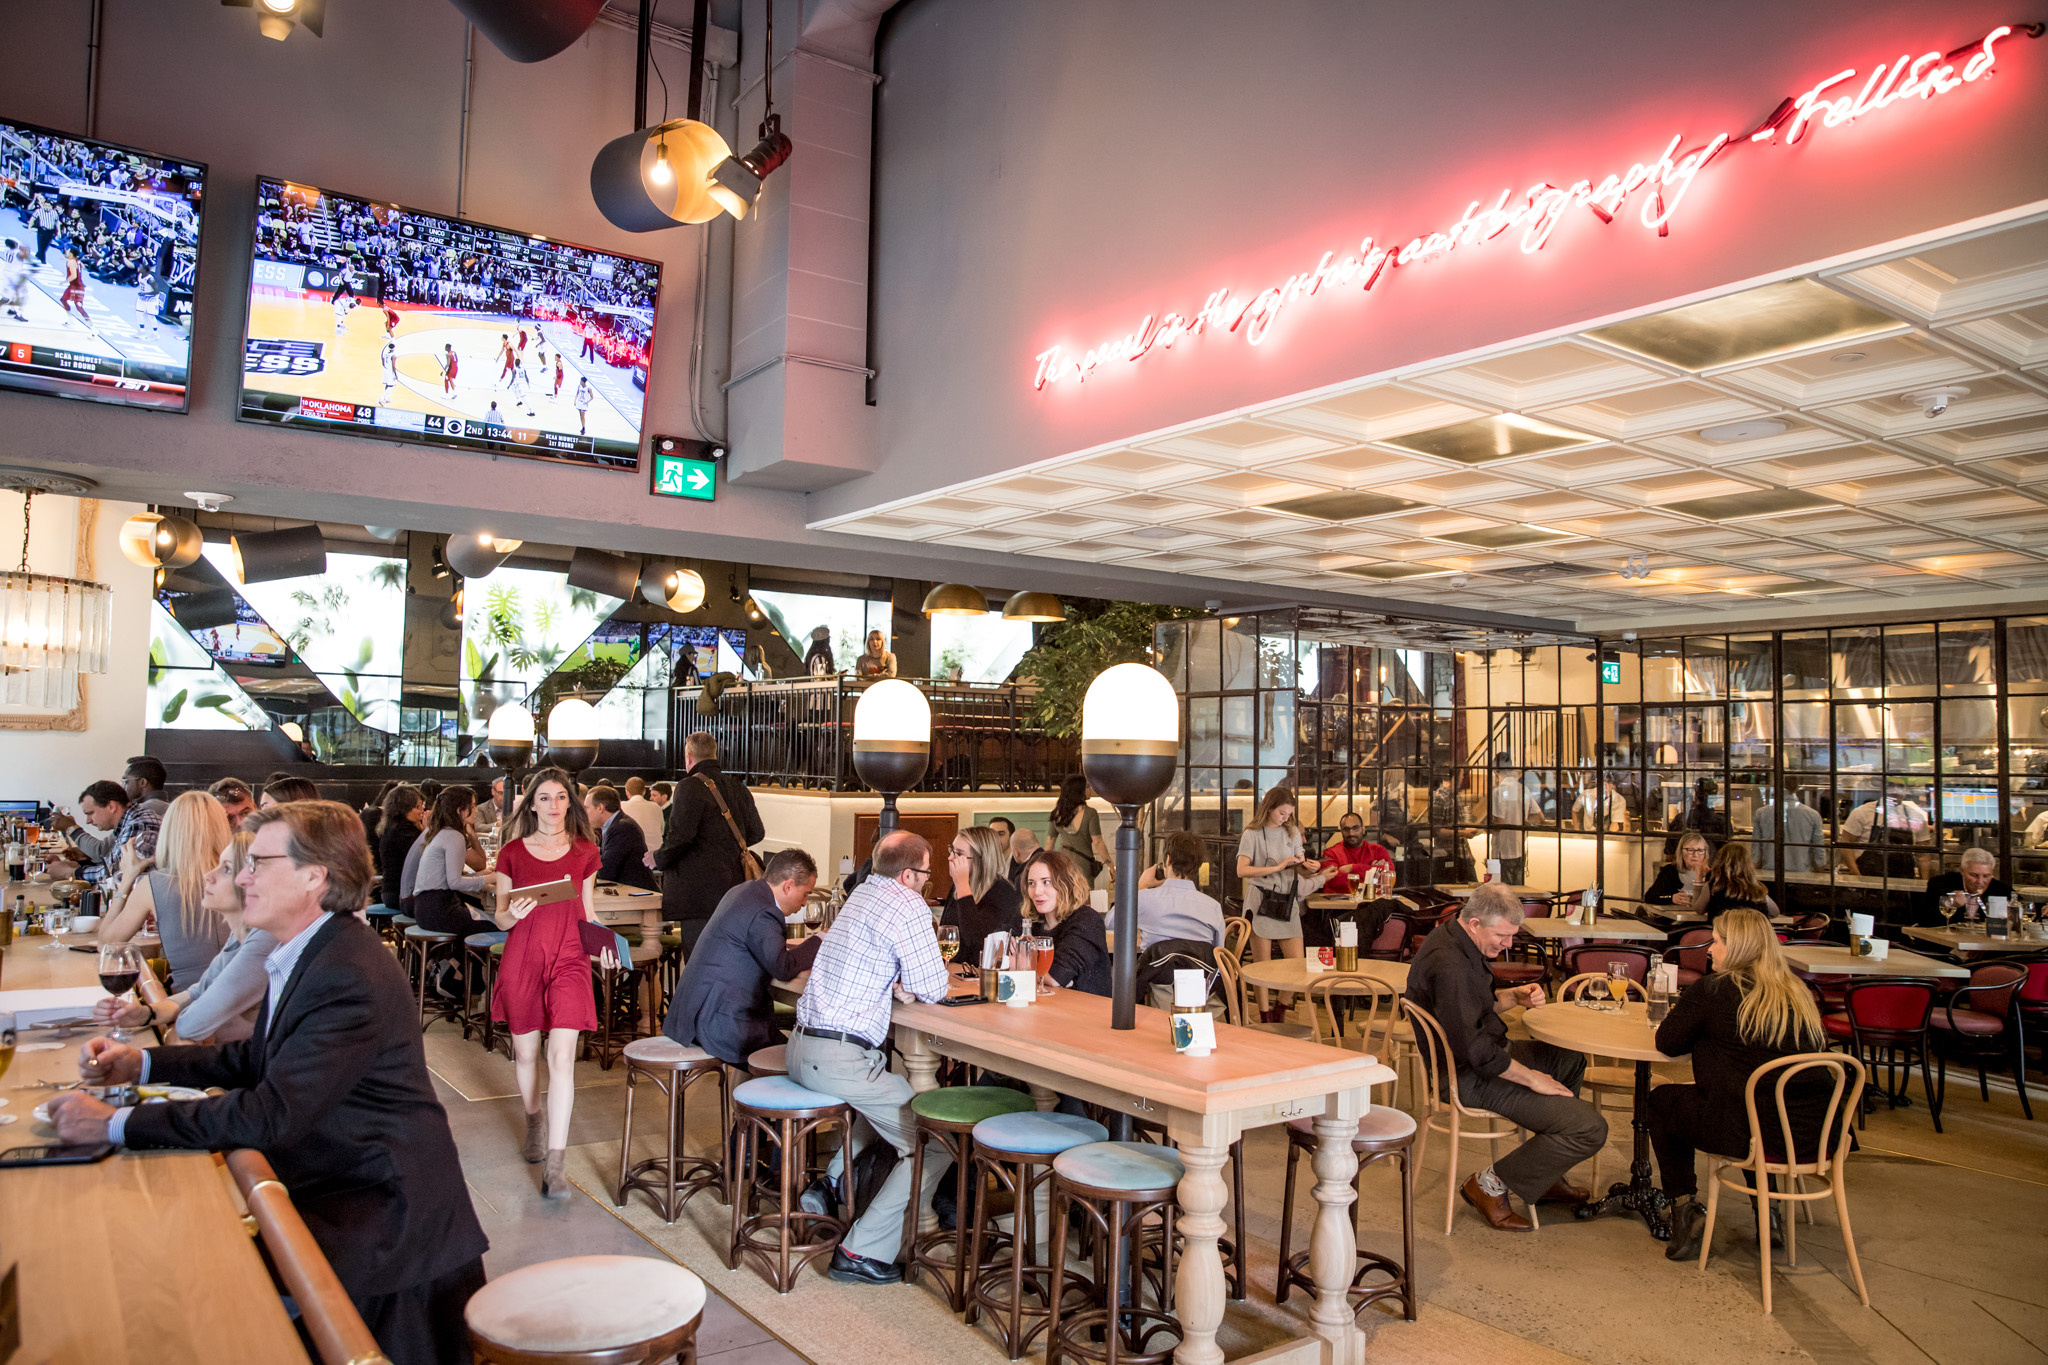 The Top 10 Restaurants Near The Sony Centre In Toronto